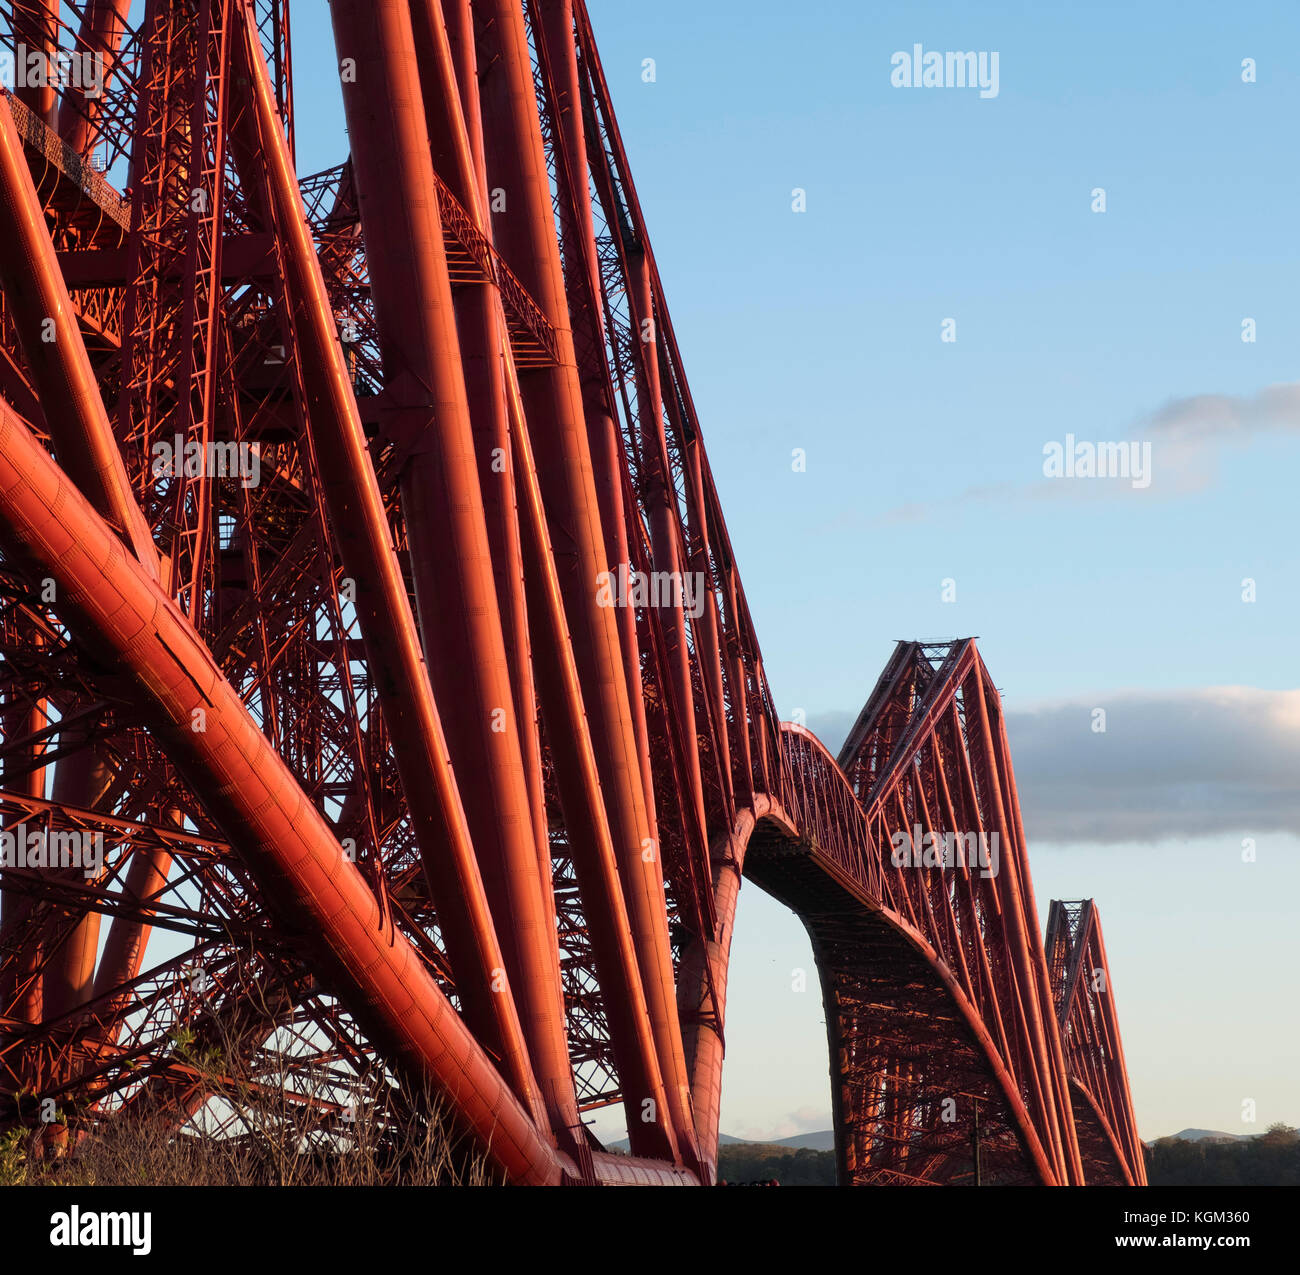 View of famous Forth Rail Bridge spanning the Firth of Forth between Fife and West Lothian in Scotland, United Kingdom. - Stock Image